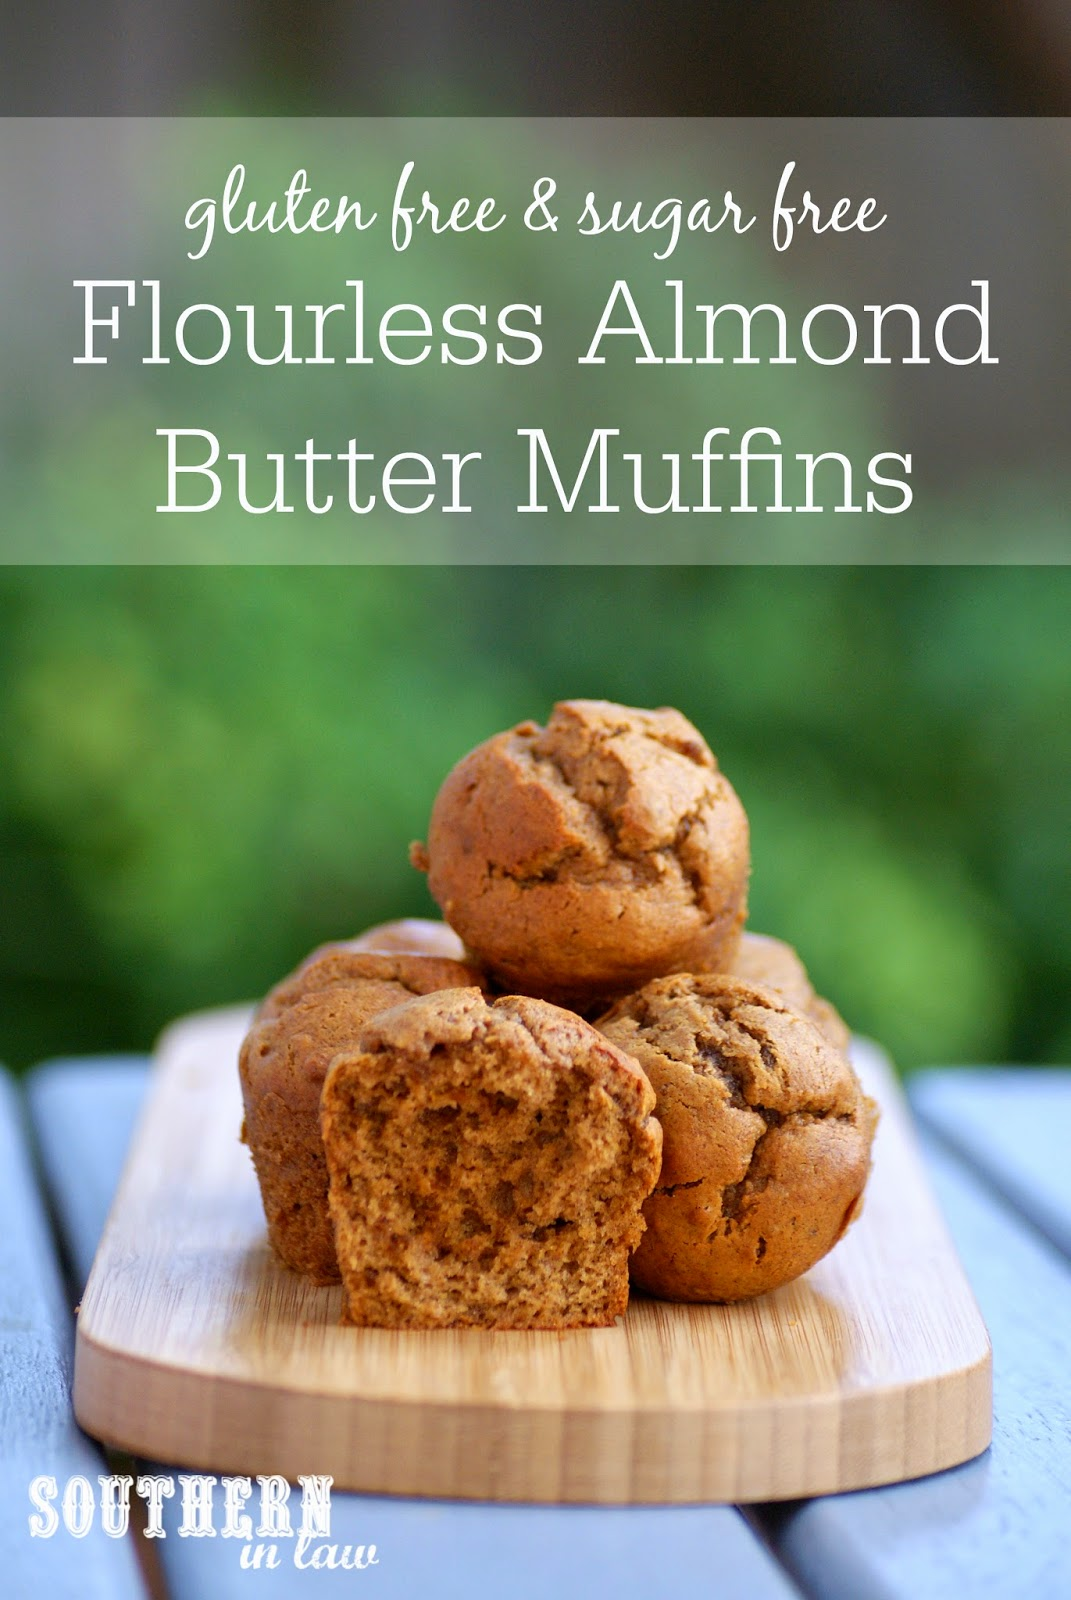 Flourless Almond Butter Muffins Recipe - low carb, gluten free, sugar free, clean eating friendly, grain free, paleo